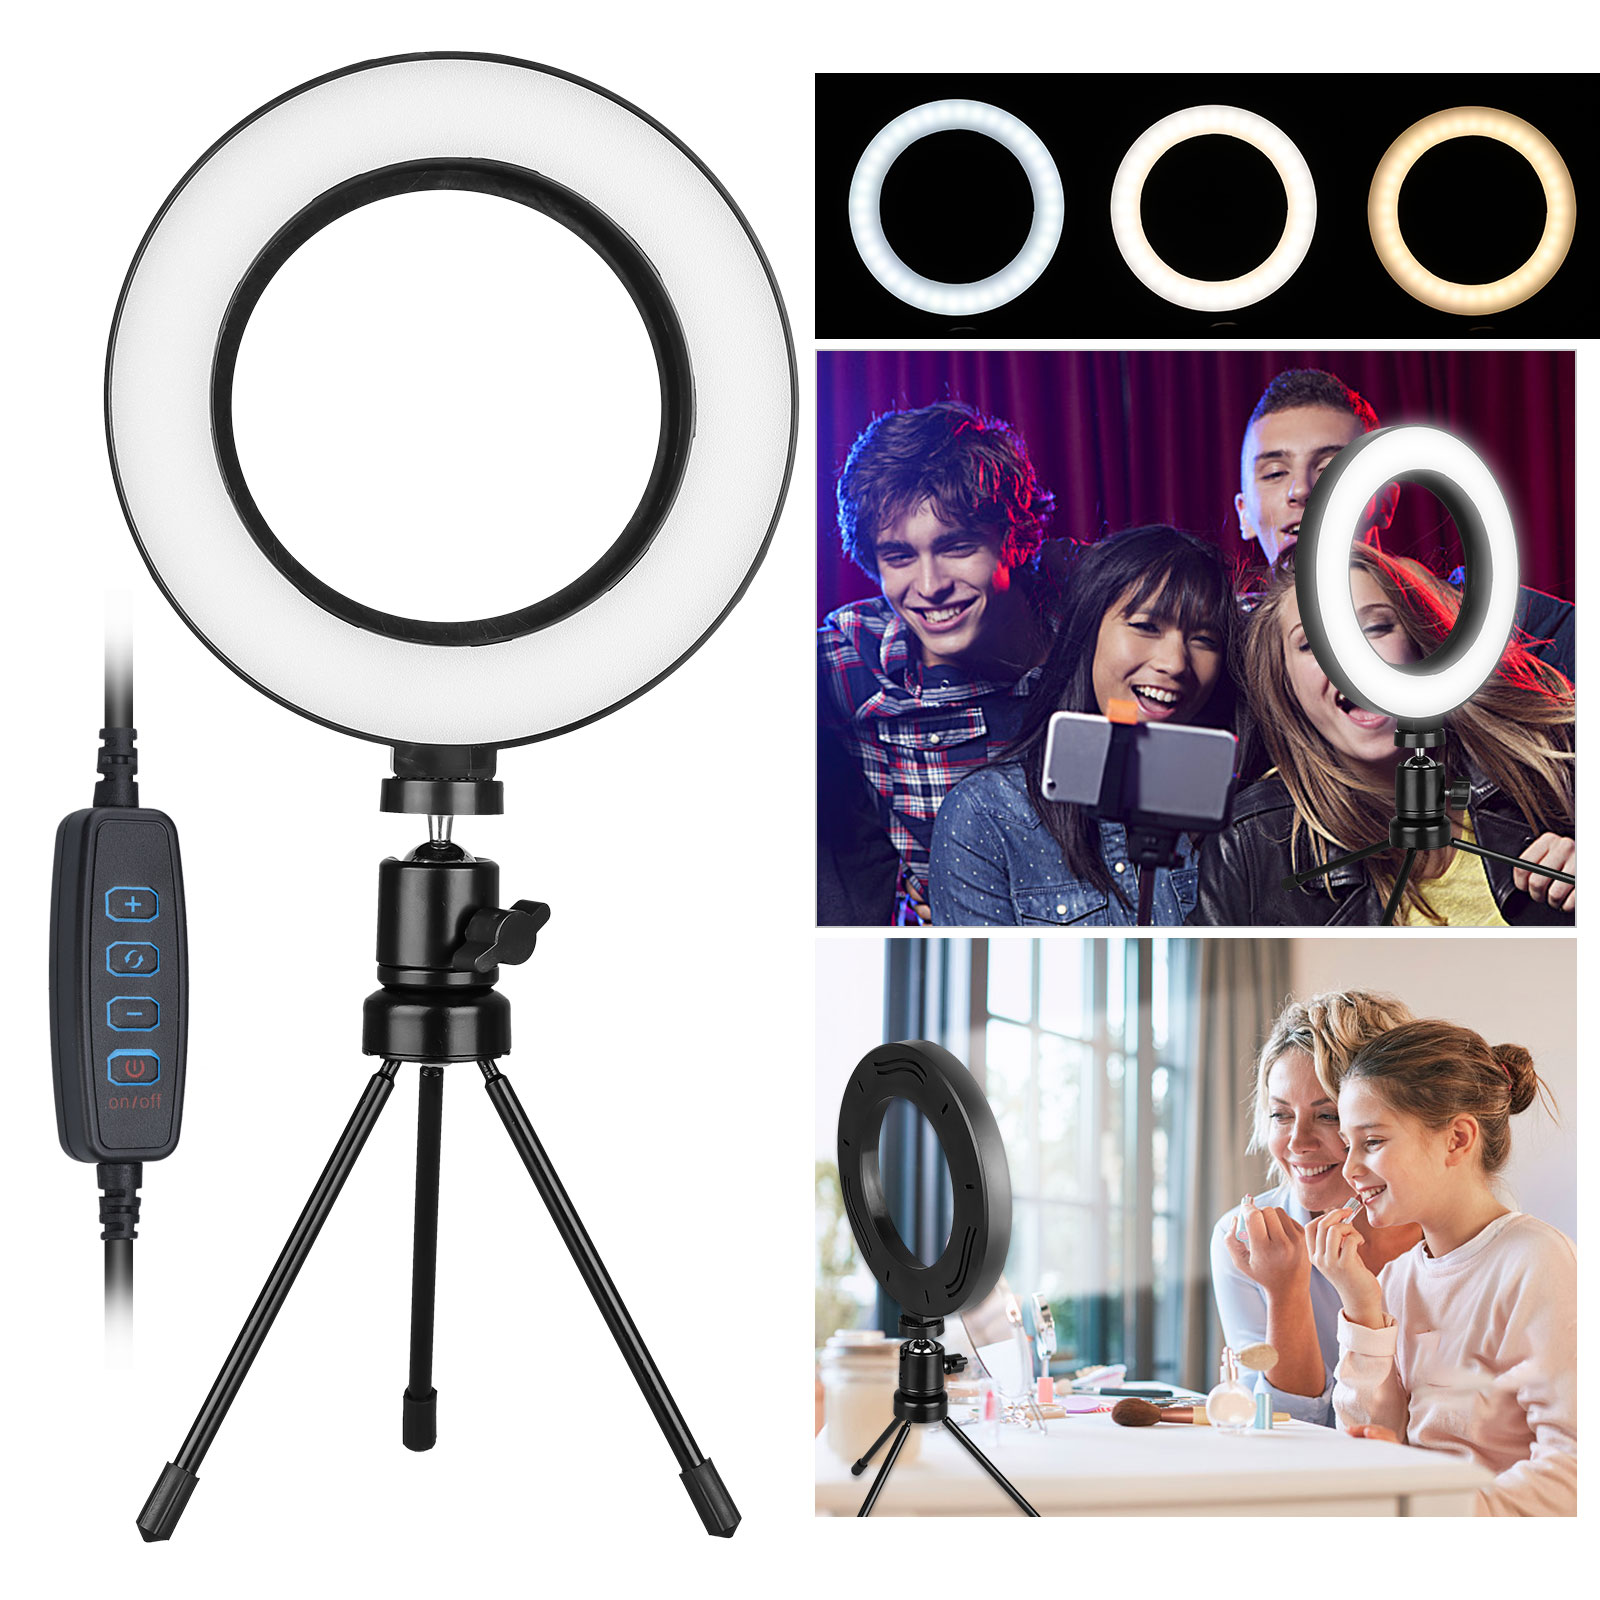 10-Inch Ring Fill Light Tripod Desktop Mobile Phone Stand Led Tri-Color Brightness Beauty Ring Light 360 /° Rotation,B